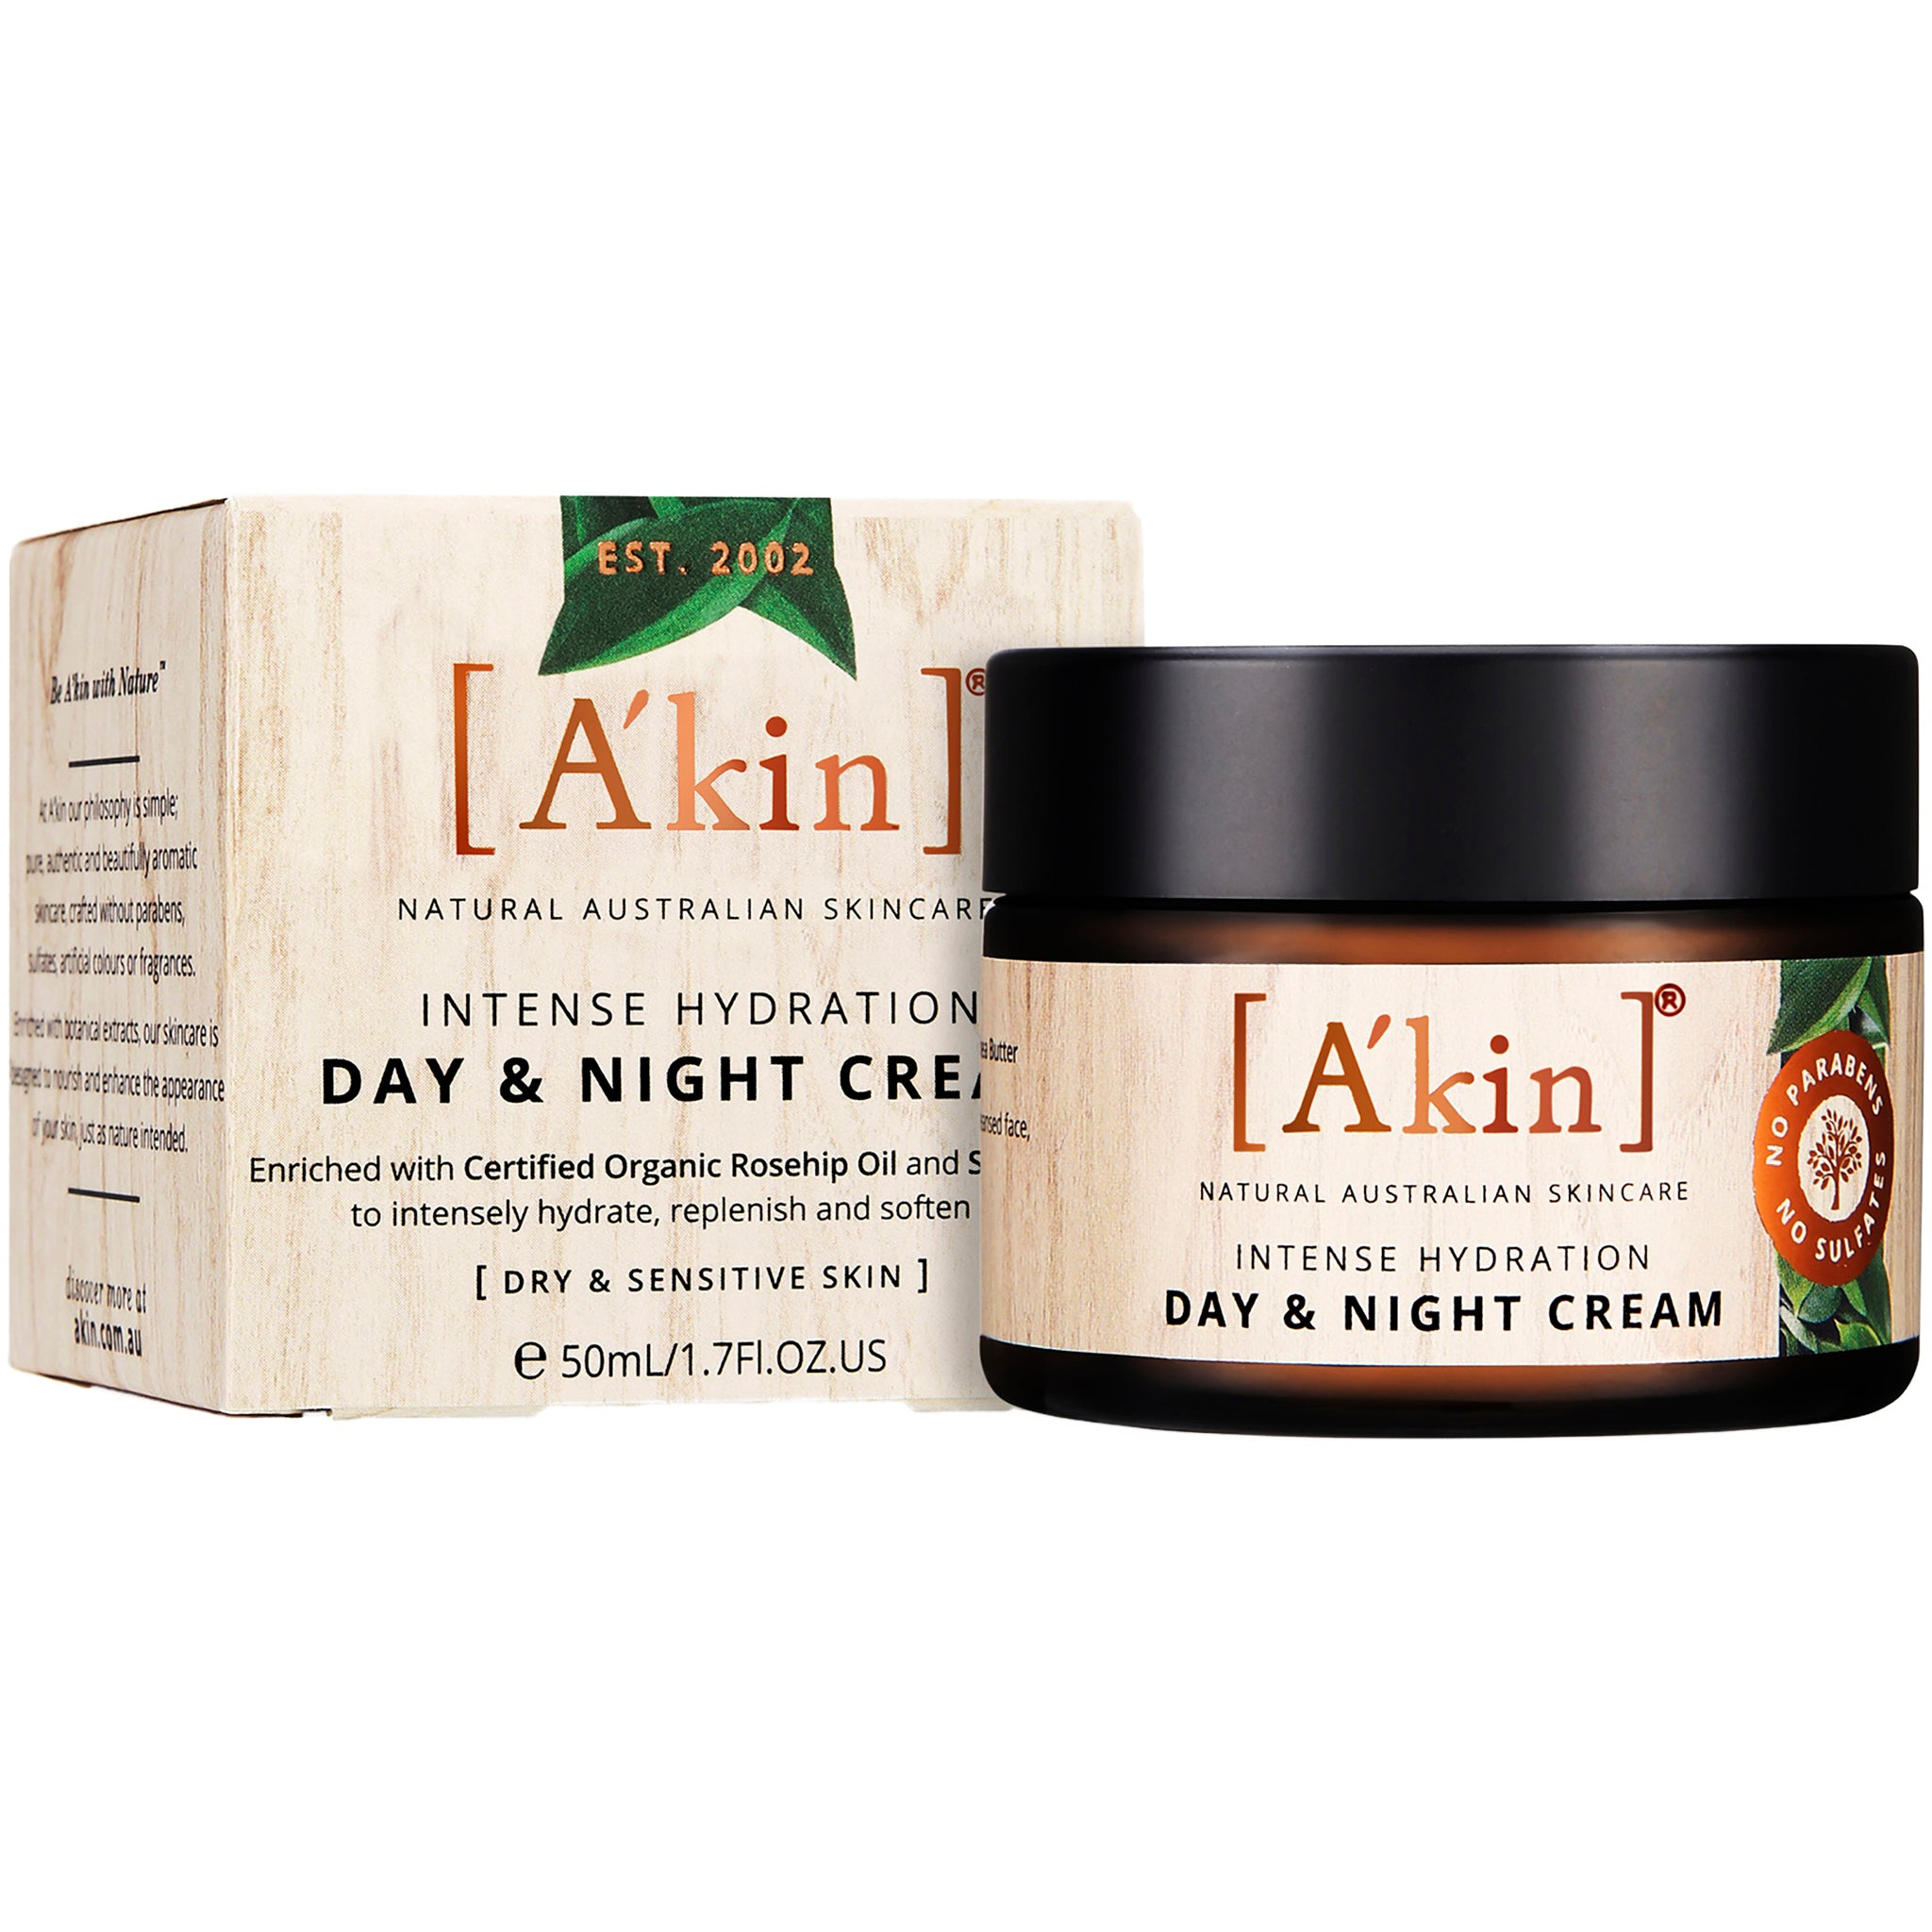 Intense Hydration Day & Night Cream